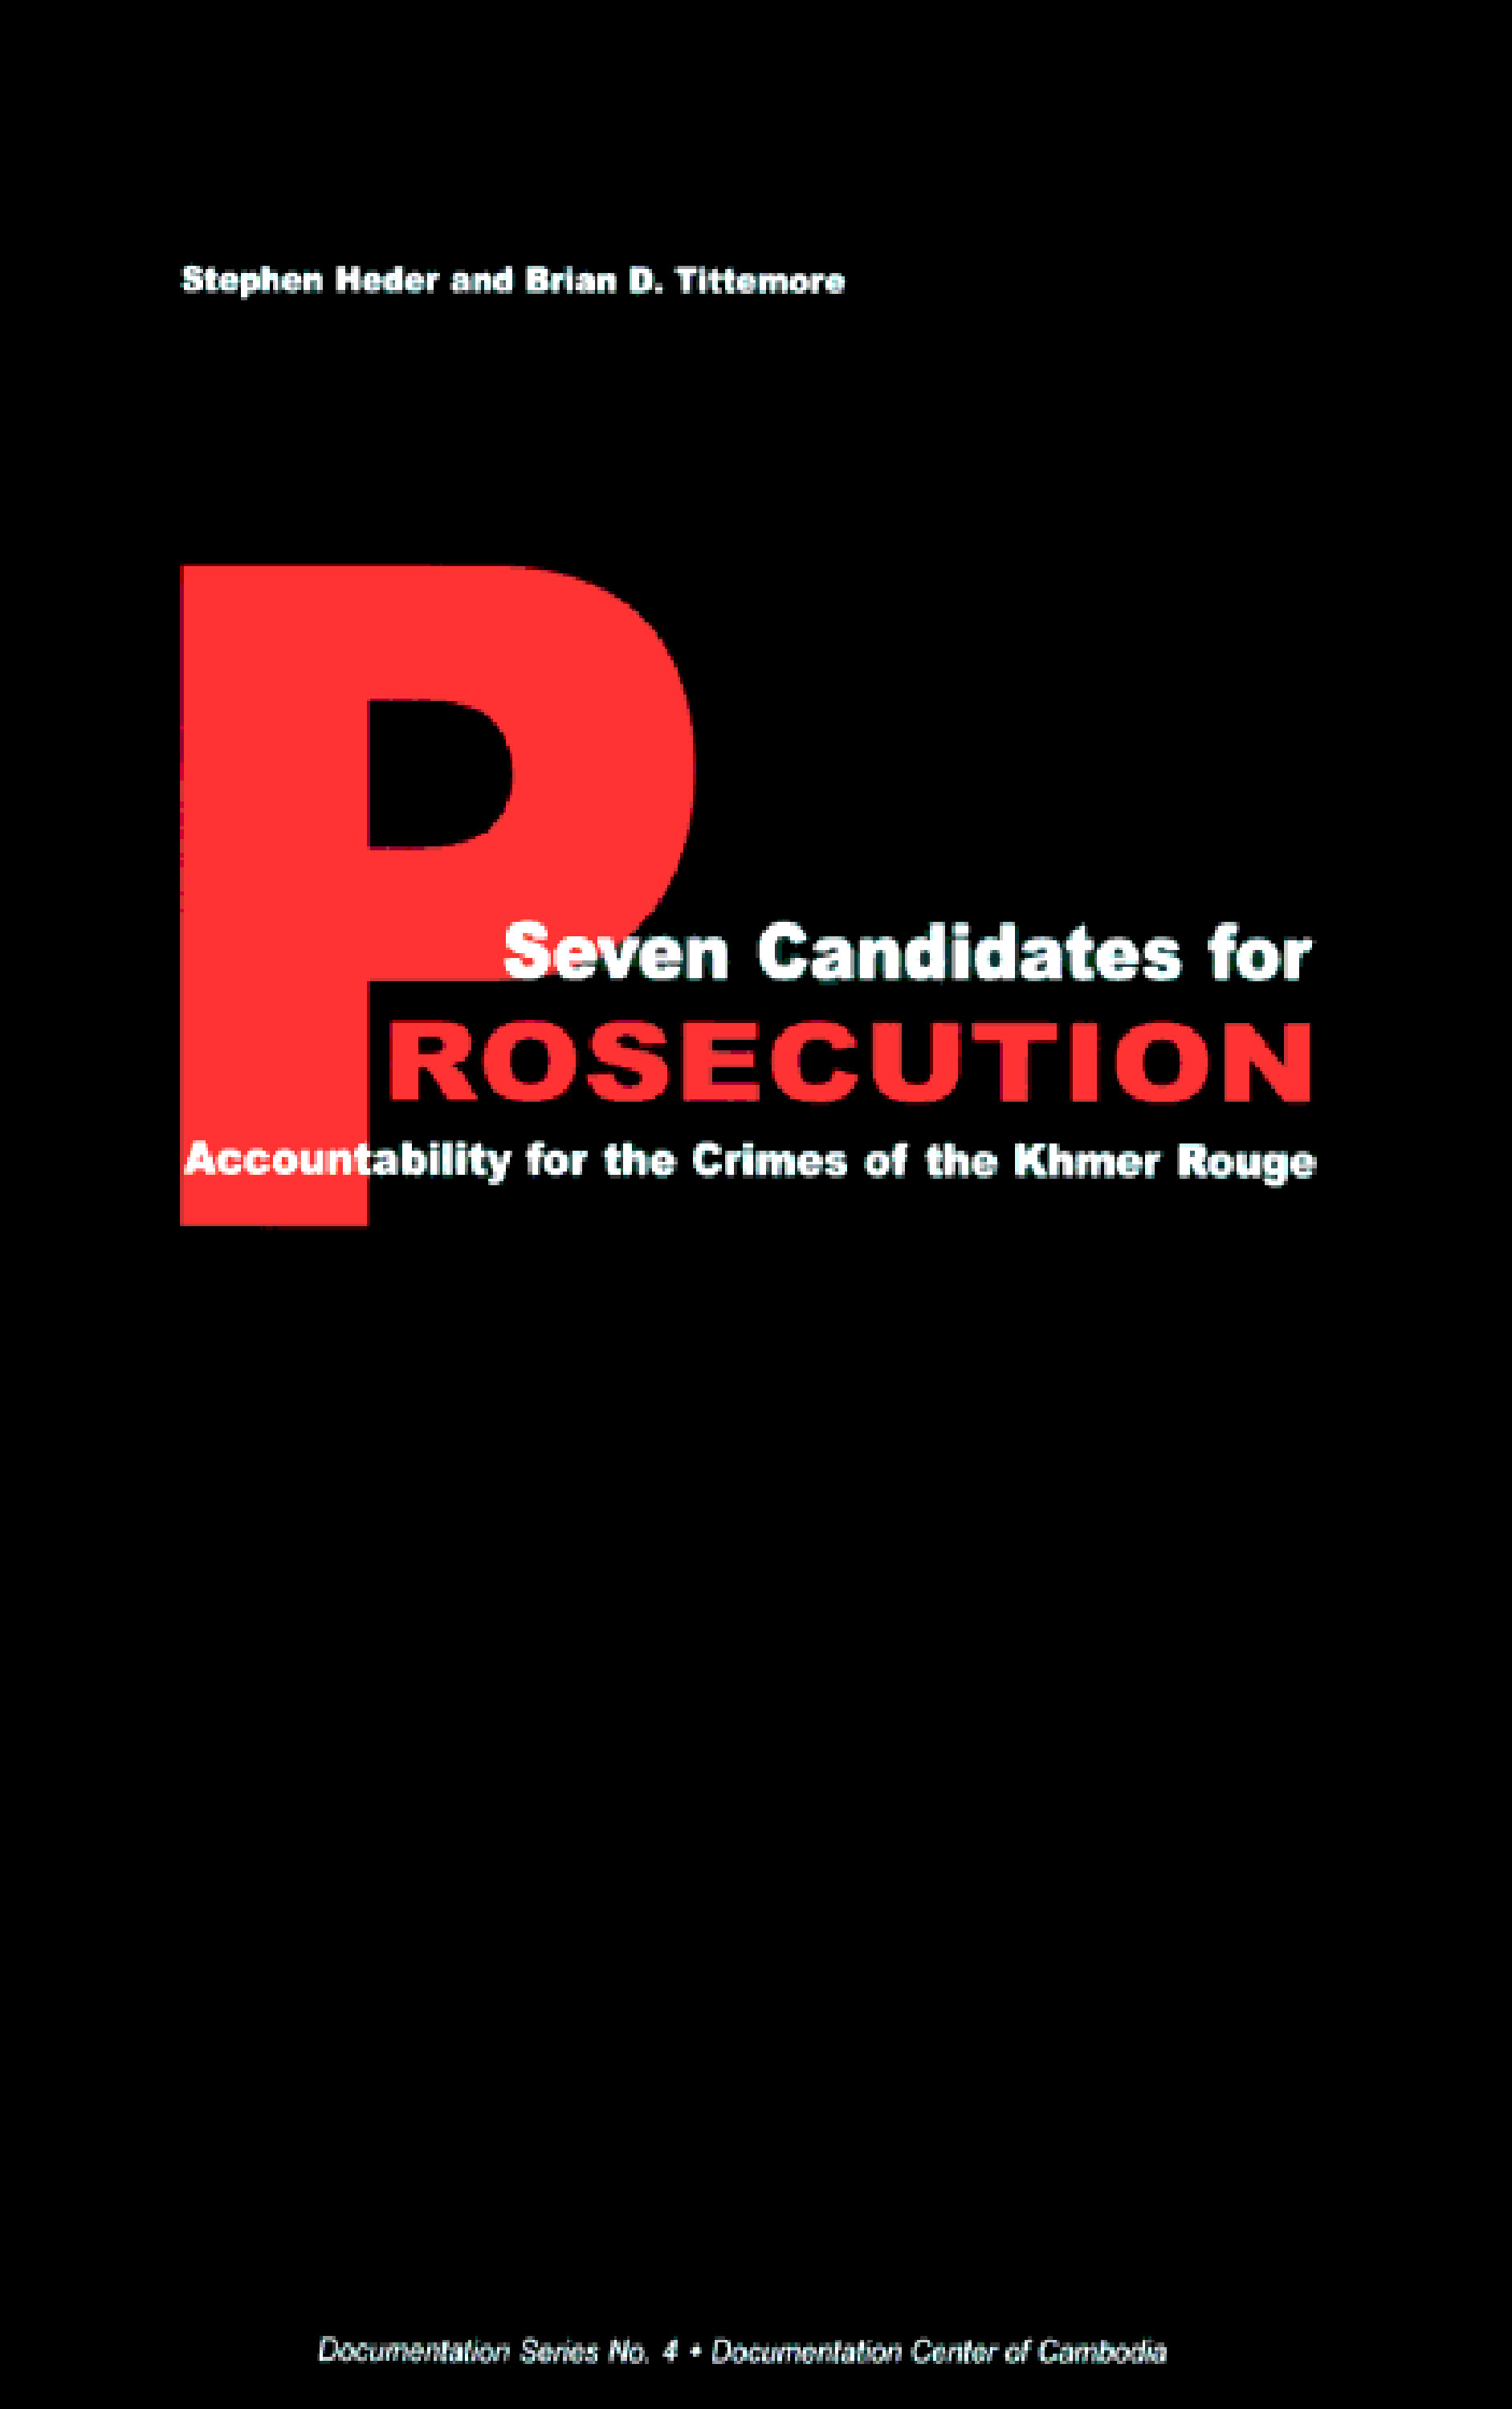 SEVEN CANDIDATES FOR PROSECUTION: Accountability for the